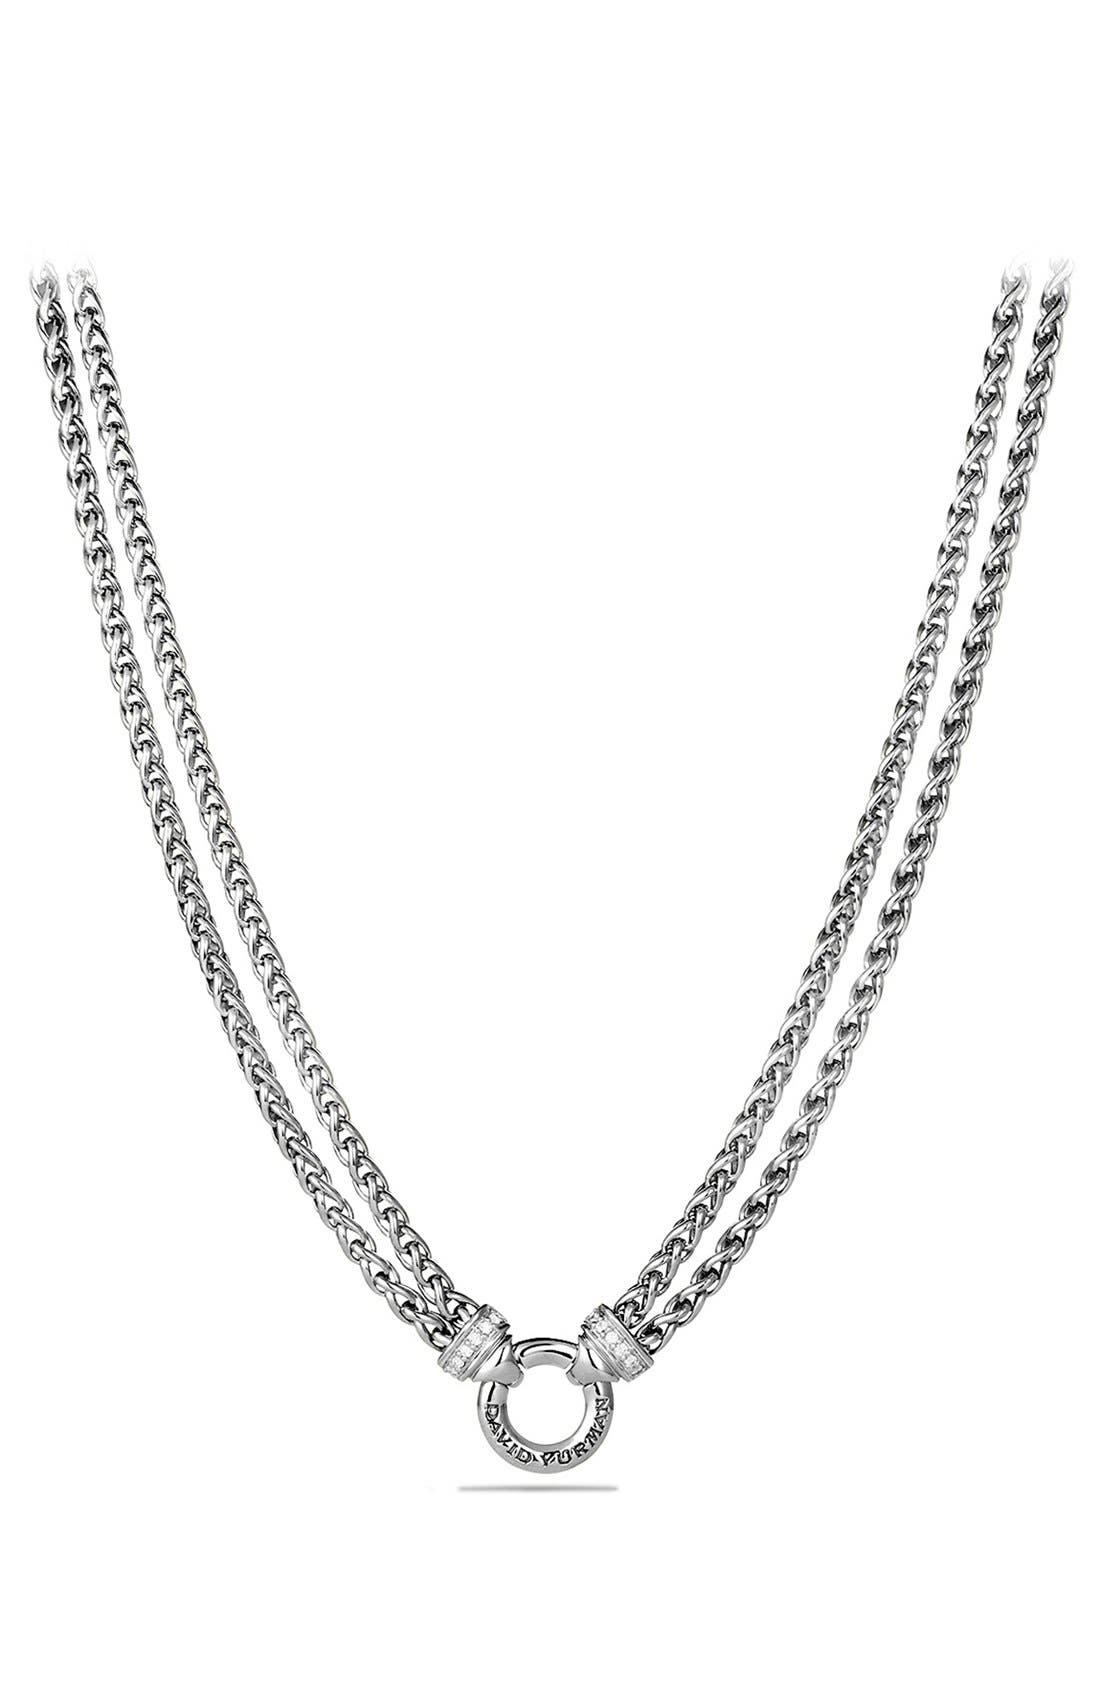 Alternate Image 1 Selected - David Yurman Double Wheat Chain Necklace with Gold